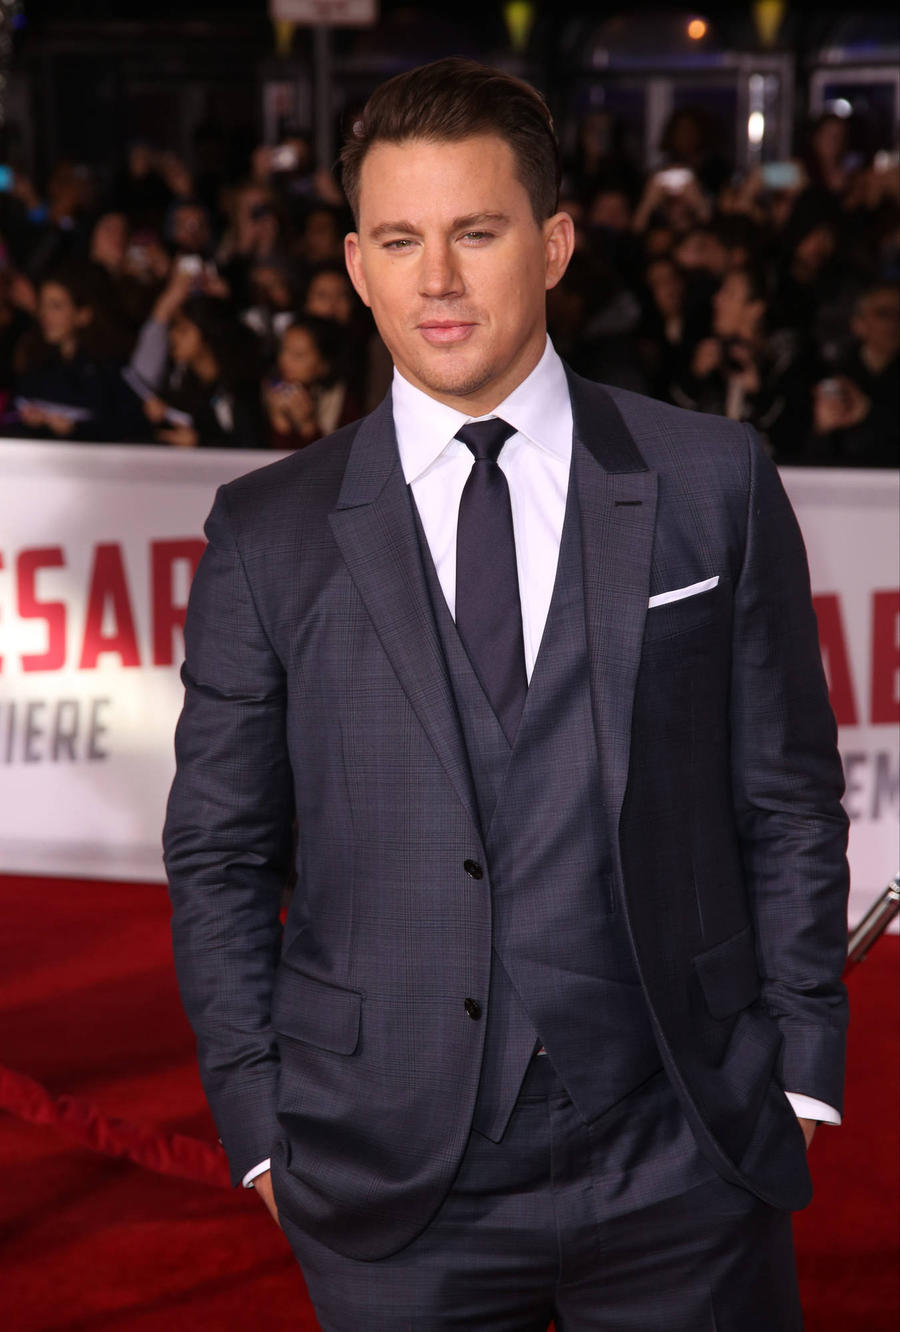 Channing Tatum | Channing Tatum: Magic Mike marketing was ... Channing Tatum